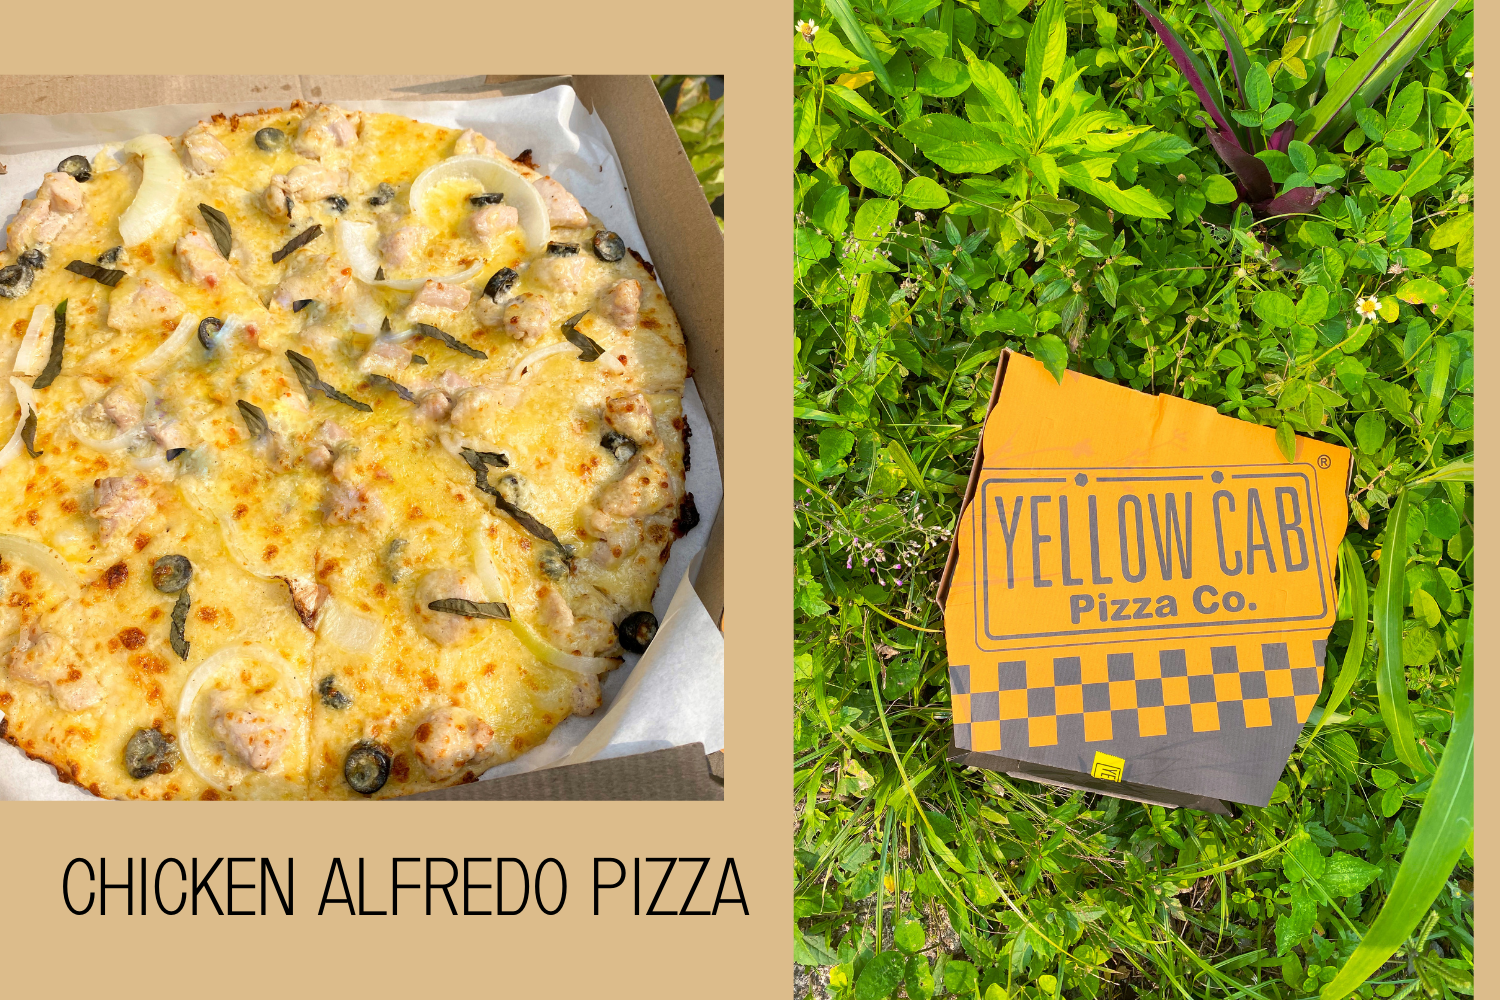 Yellow Cab Releases New Chicken Alfredo Pizza